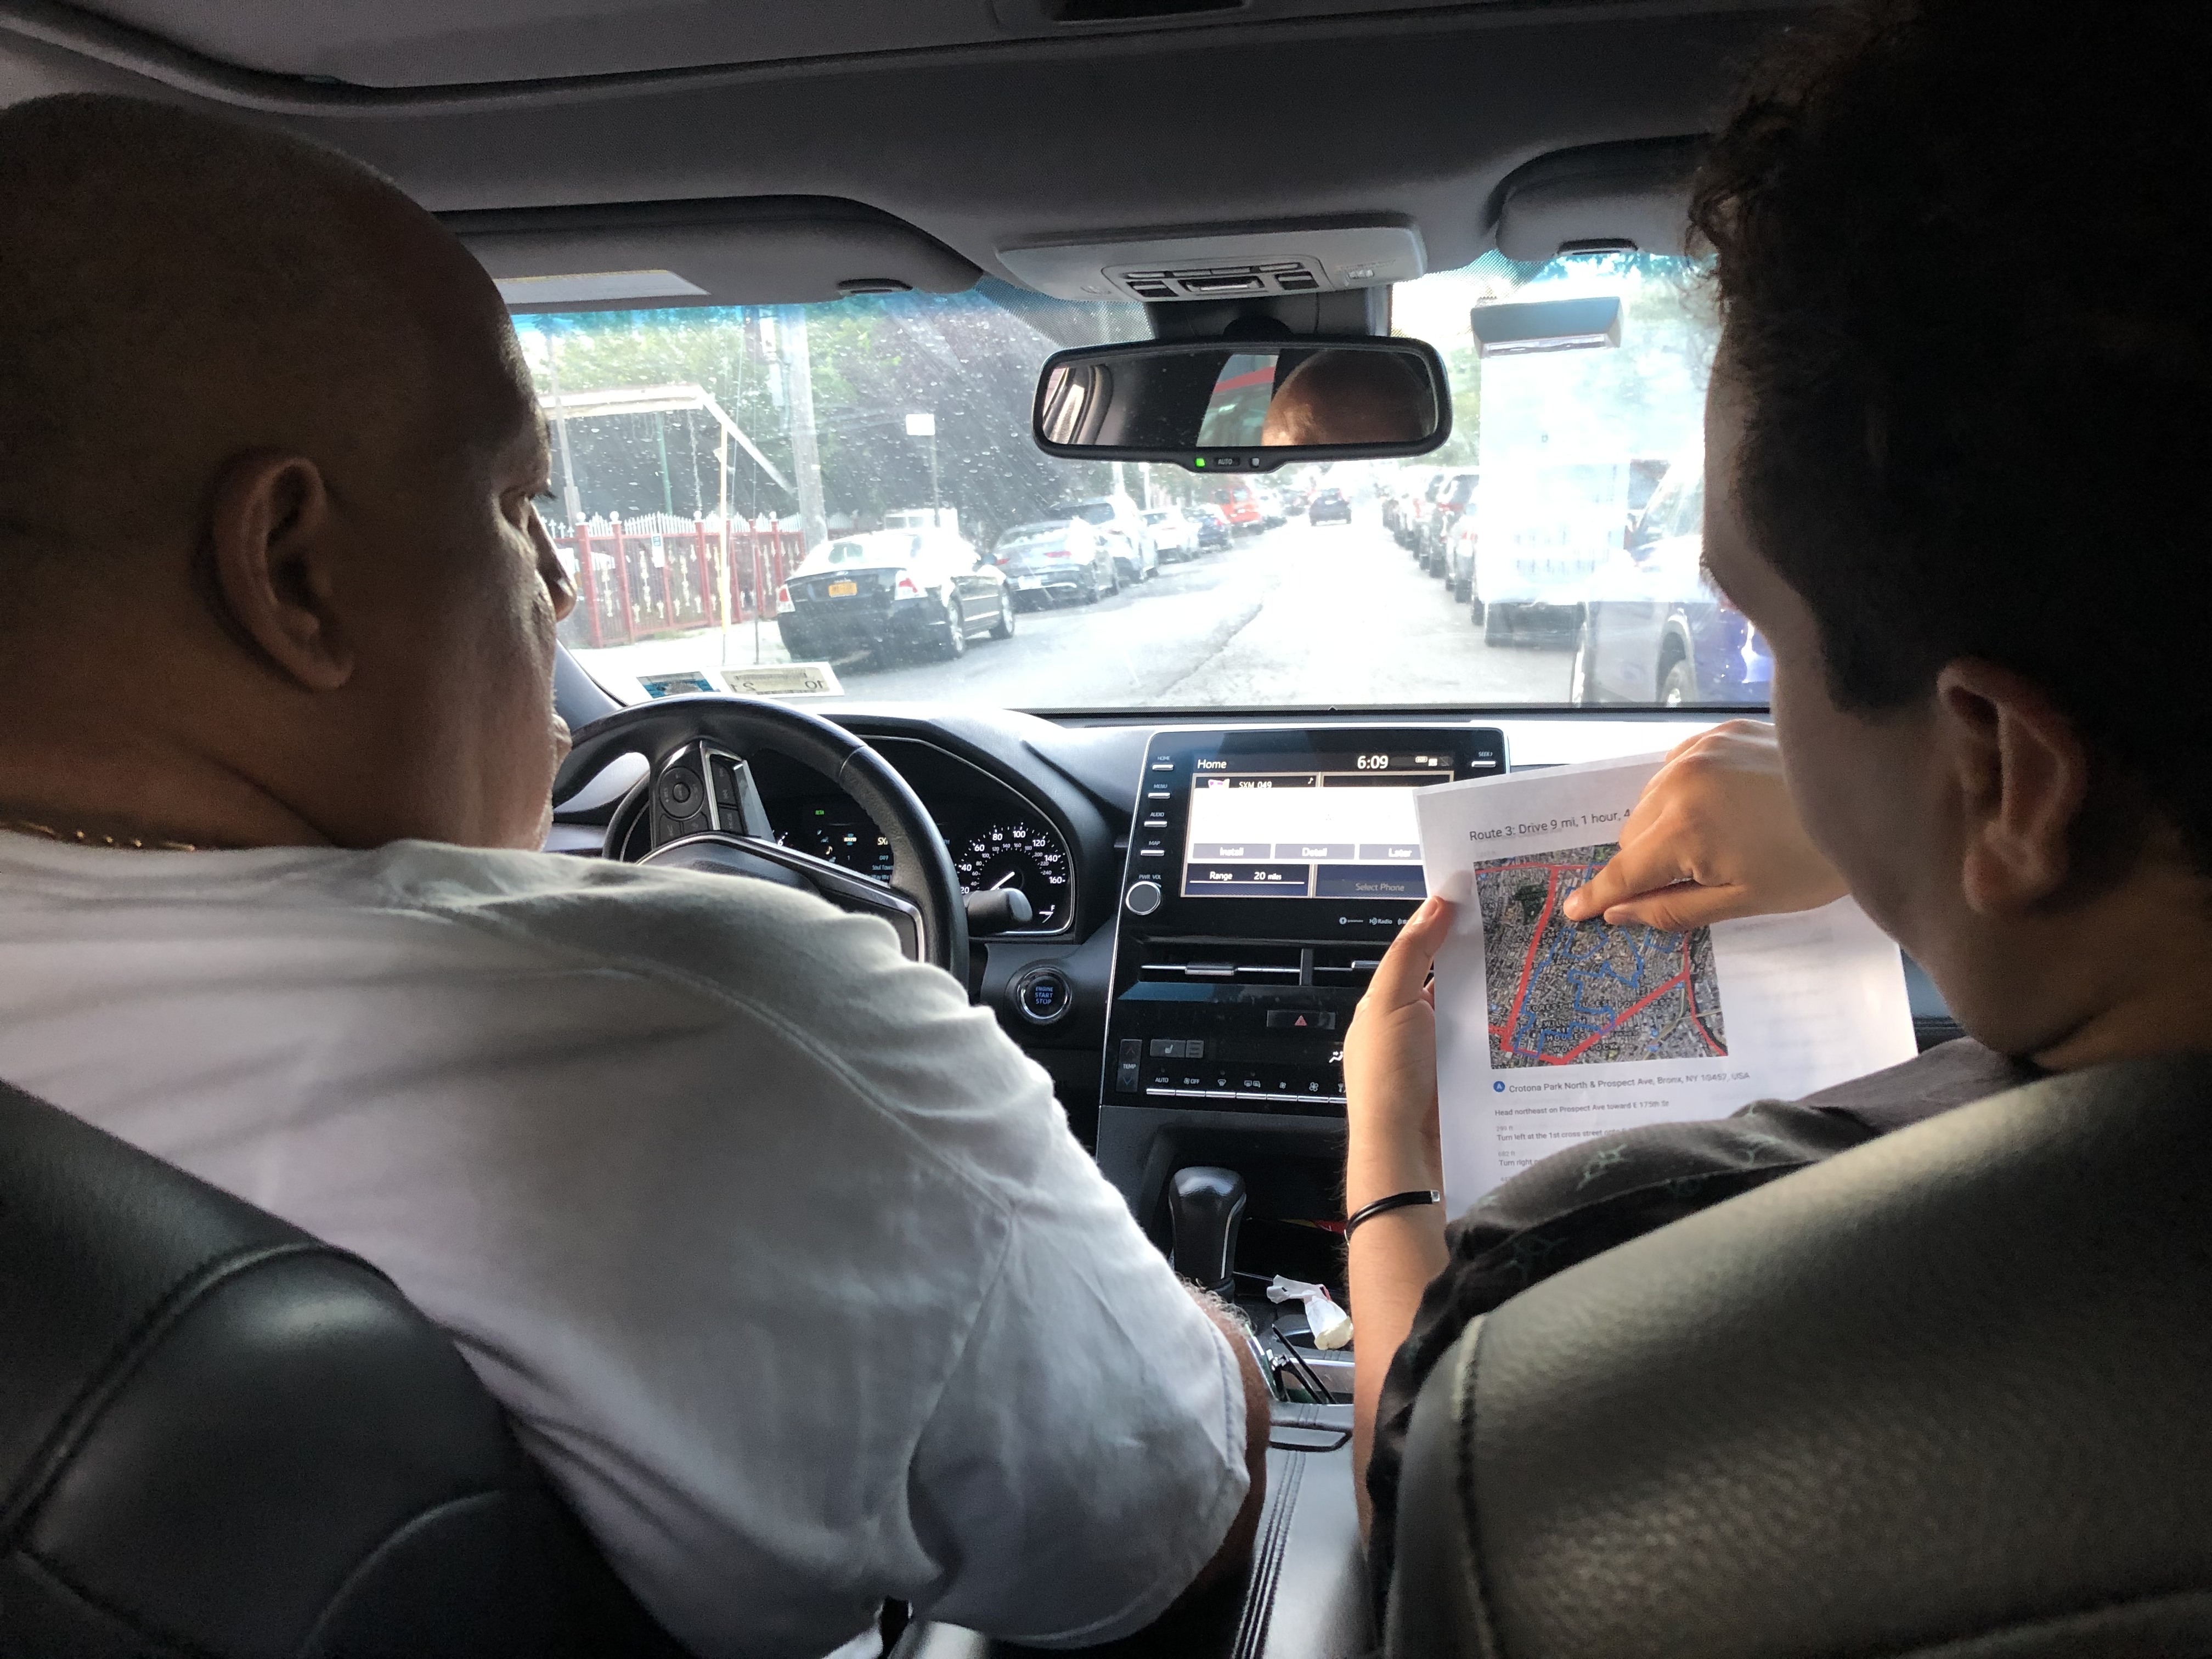 Two men sitting in the driver's and passenger's seat in a car, looking at a map.